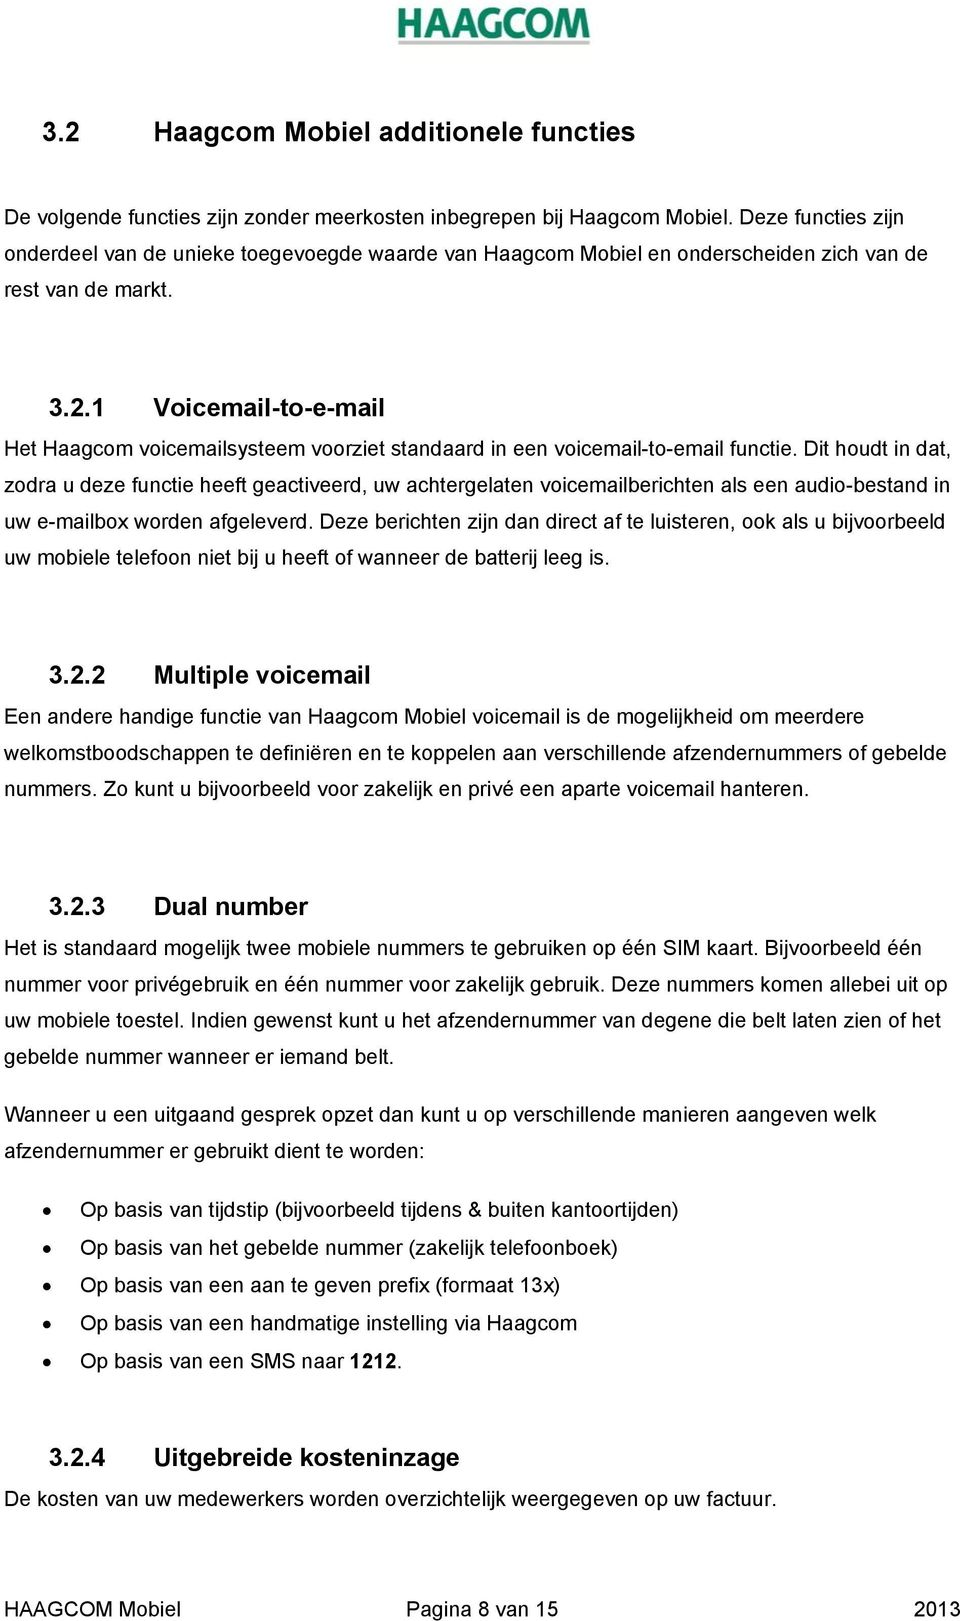 1 Voicemail-to-e-mail Het Haagcom voicemailsysteem voorziet standaard in een voicemail-to-email functie.